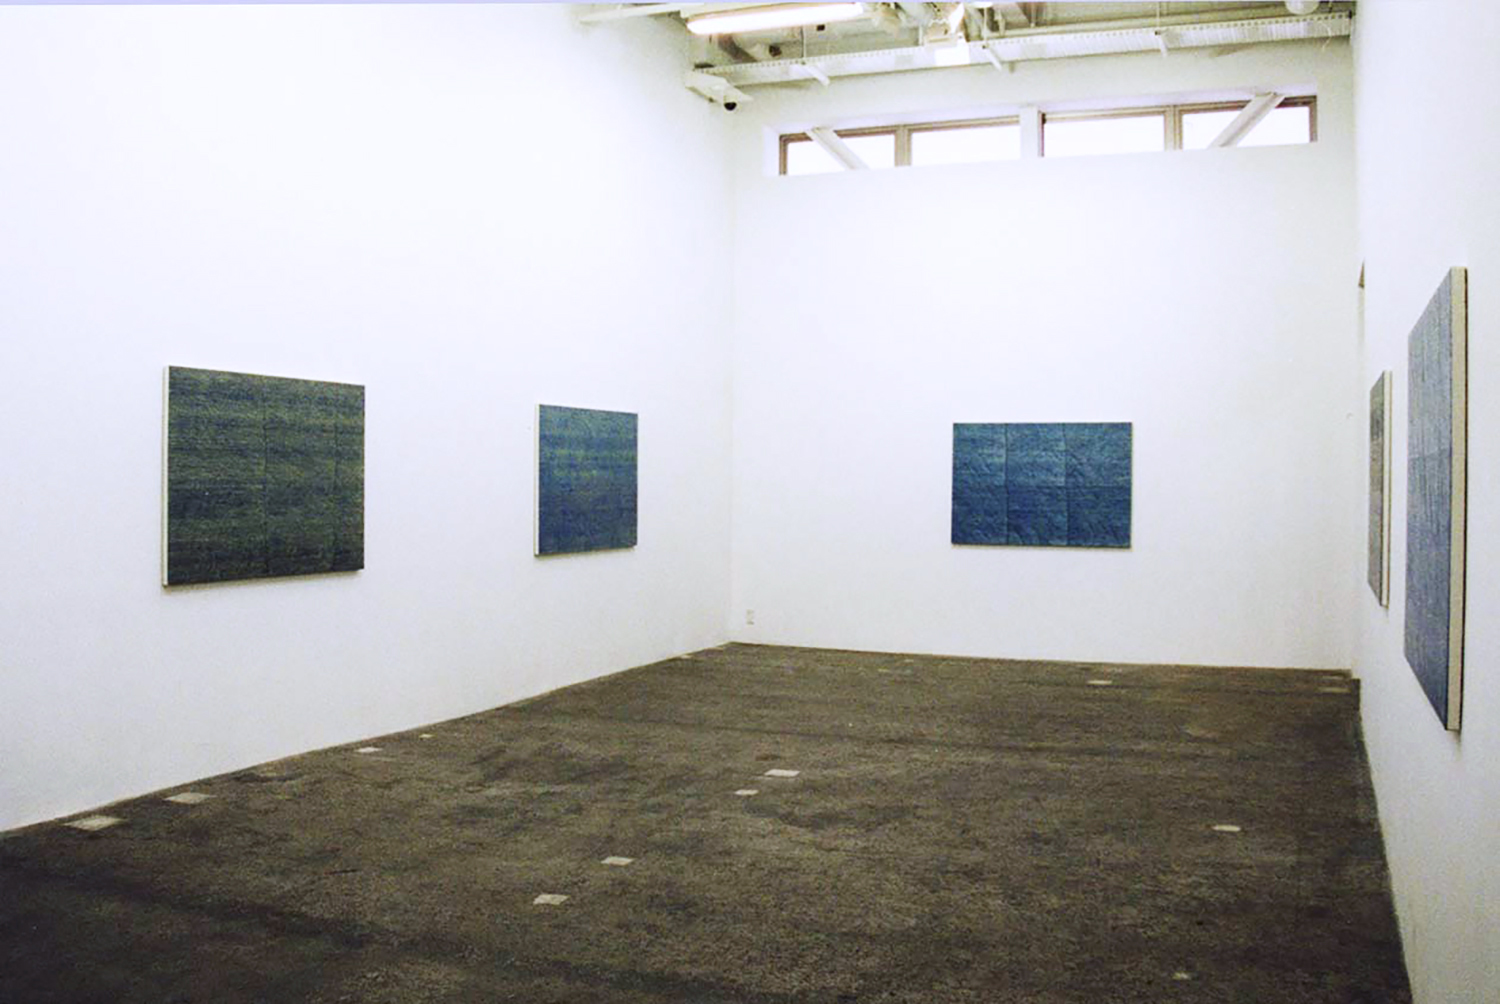 Installation View<br>CASO Space D<br>Trace-Blue 6 paintings 103 x 150 cm 2000 each